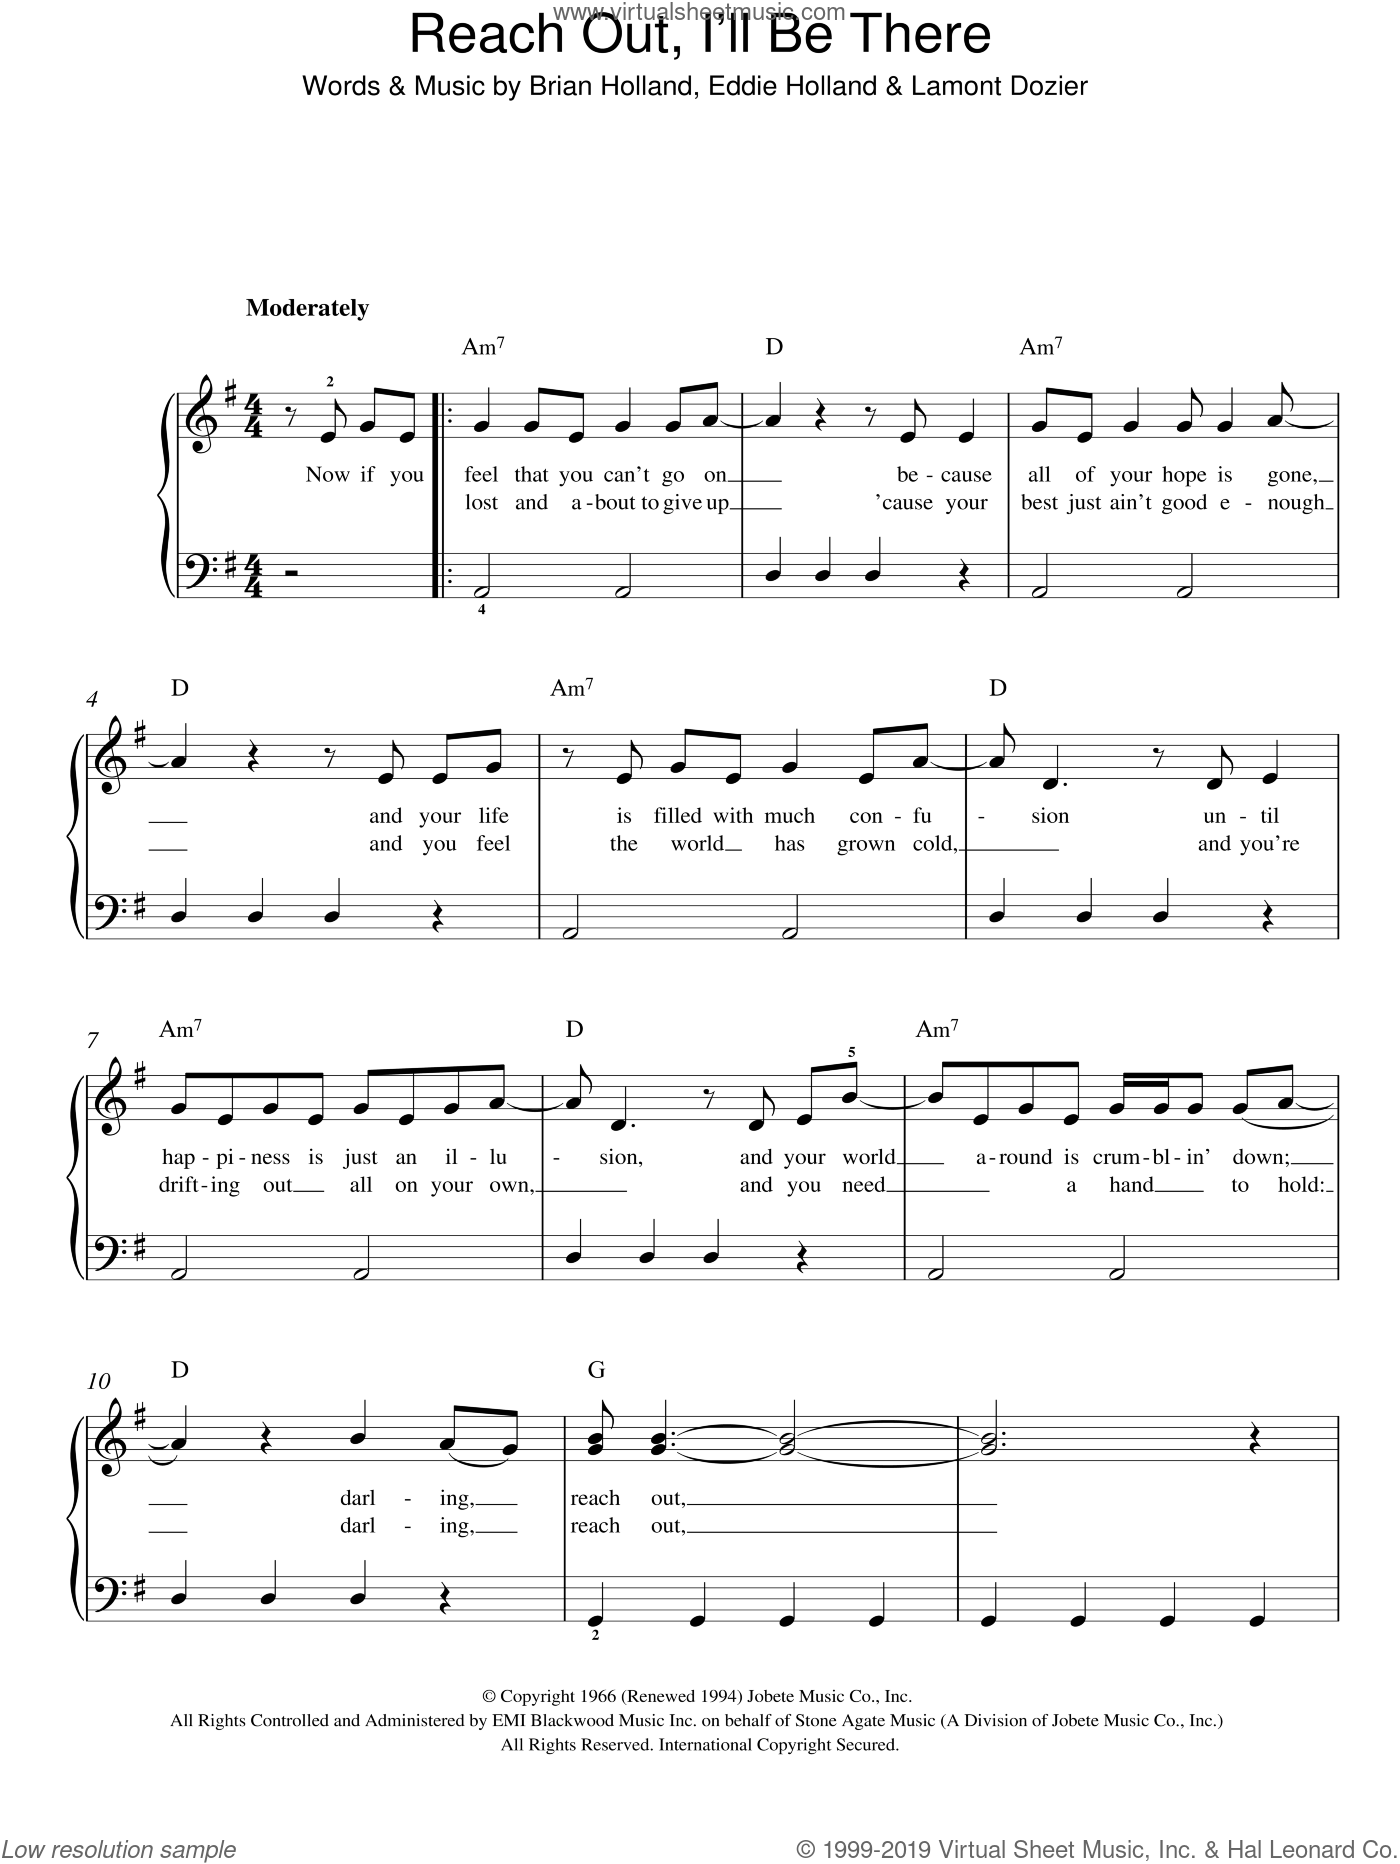 Reach Out, I'll Be There sheet music for piano solo by Lamont Dozier, The Four Tops, Brian Holland and Eddie Holland. Score Image Preview.